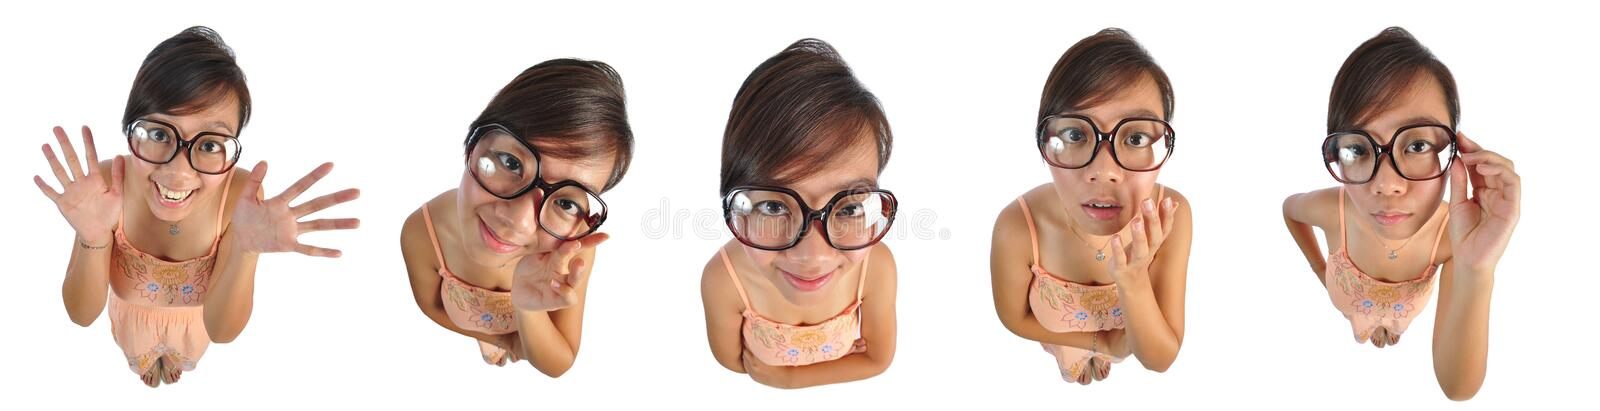 Asian chinese girl making funny doll faces 2. Beautiful young Asian Woman picture taken from the top to give a big doll head effect stock photos